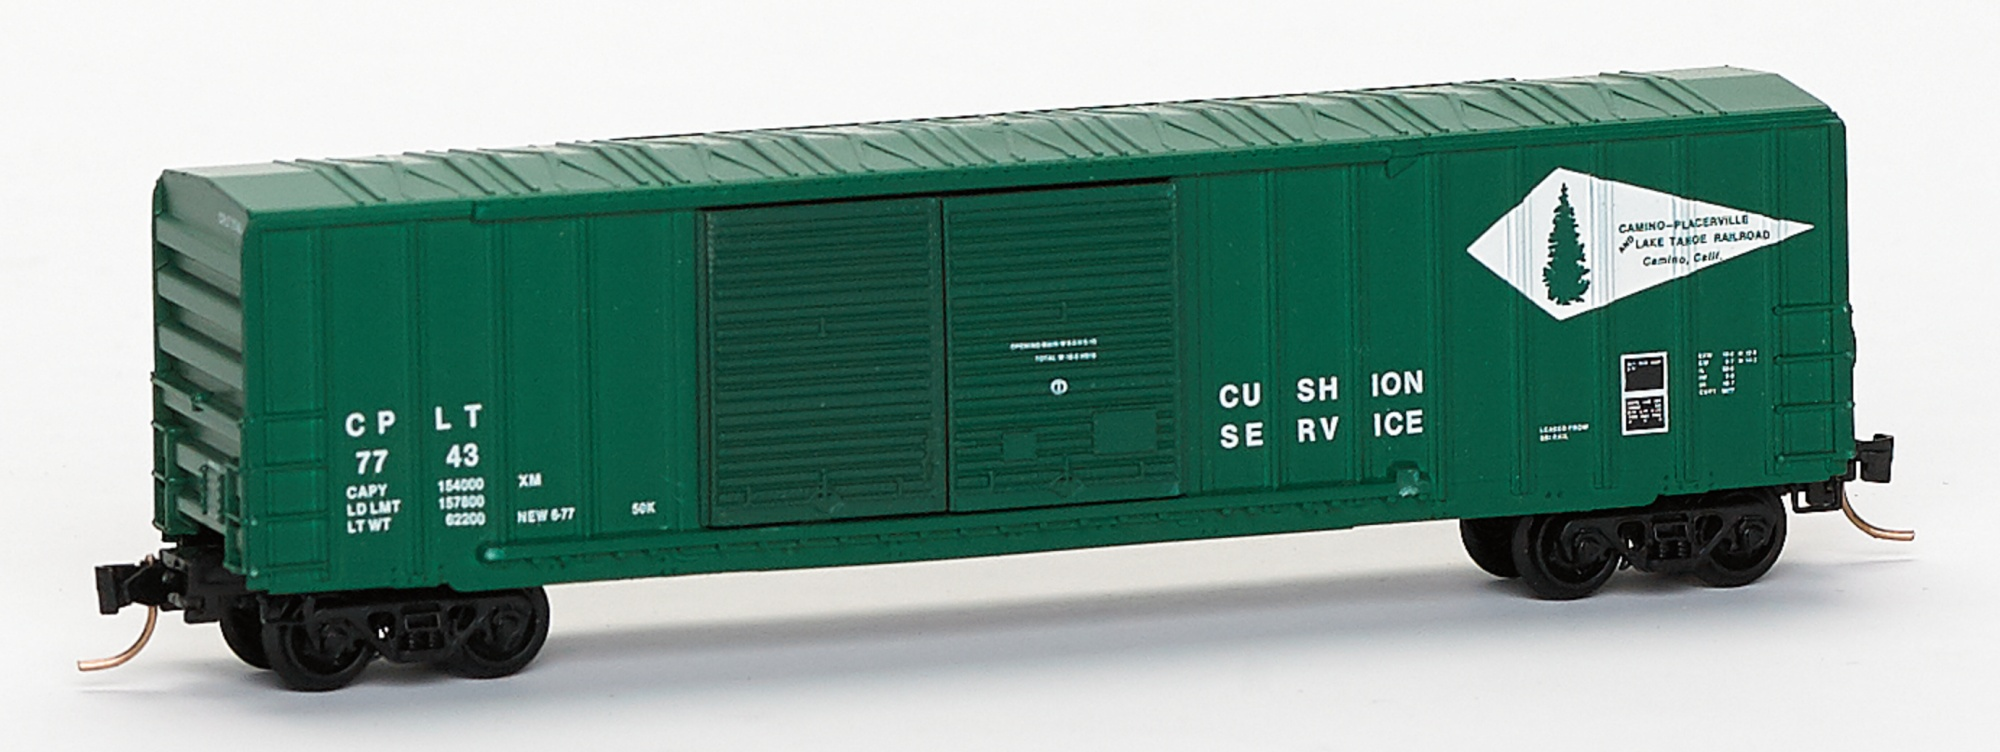 N Scale - Micro-Trains - 30100 - Boxcar, 50 Foot, Steel - Camino, Placerville and Lake Tahoe - 7743